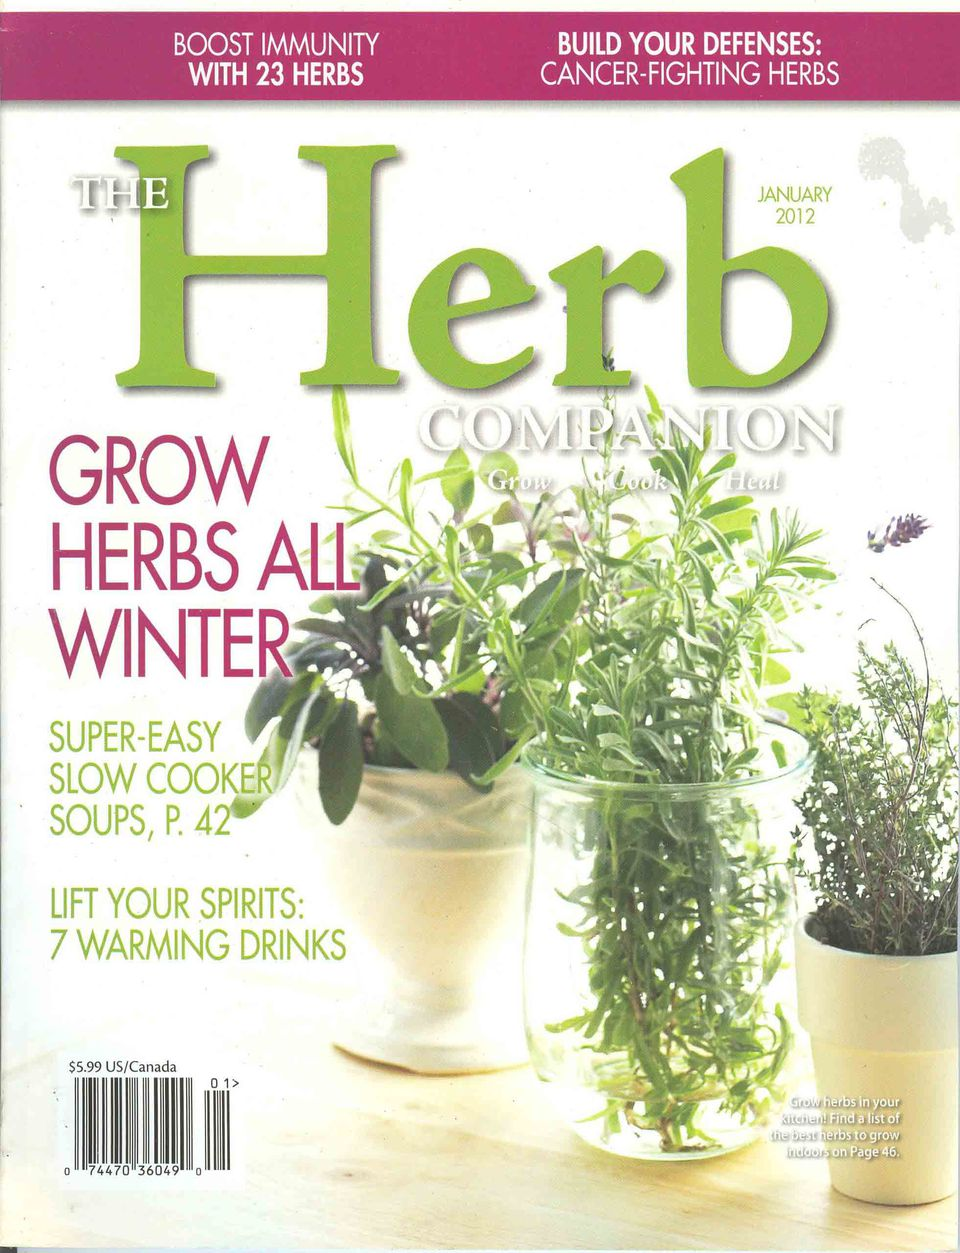 The Herbal Companion magazine